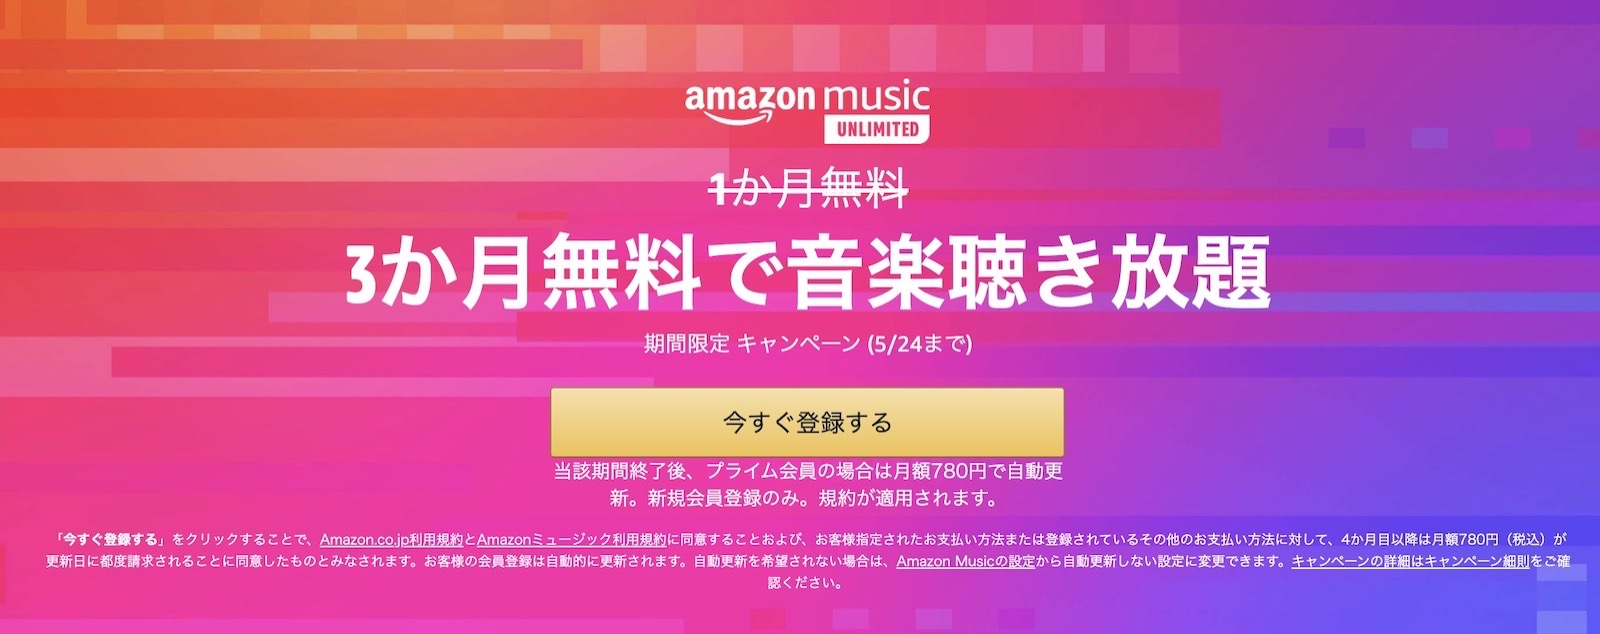 Amazon music unlimited 3month free trial